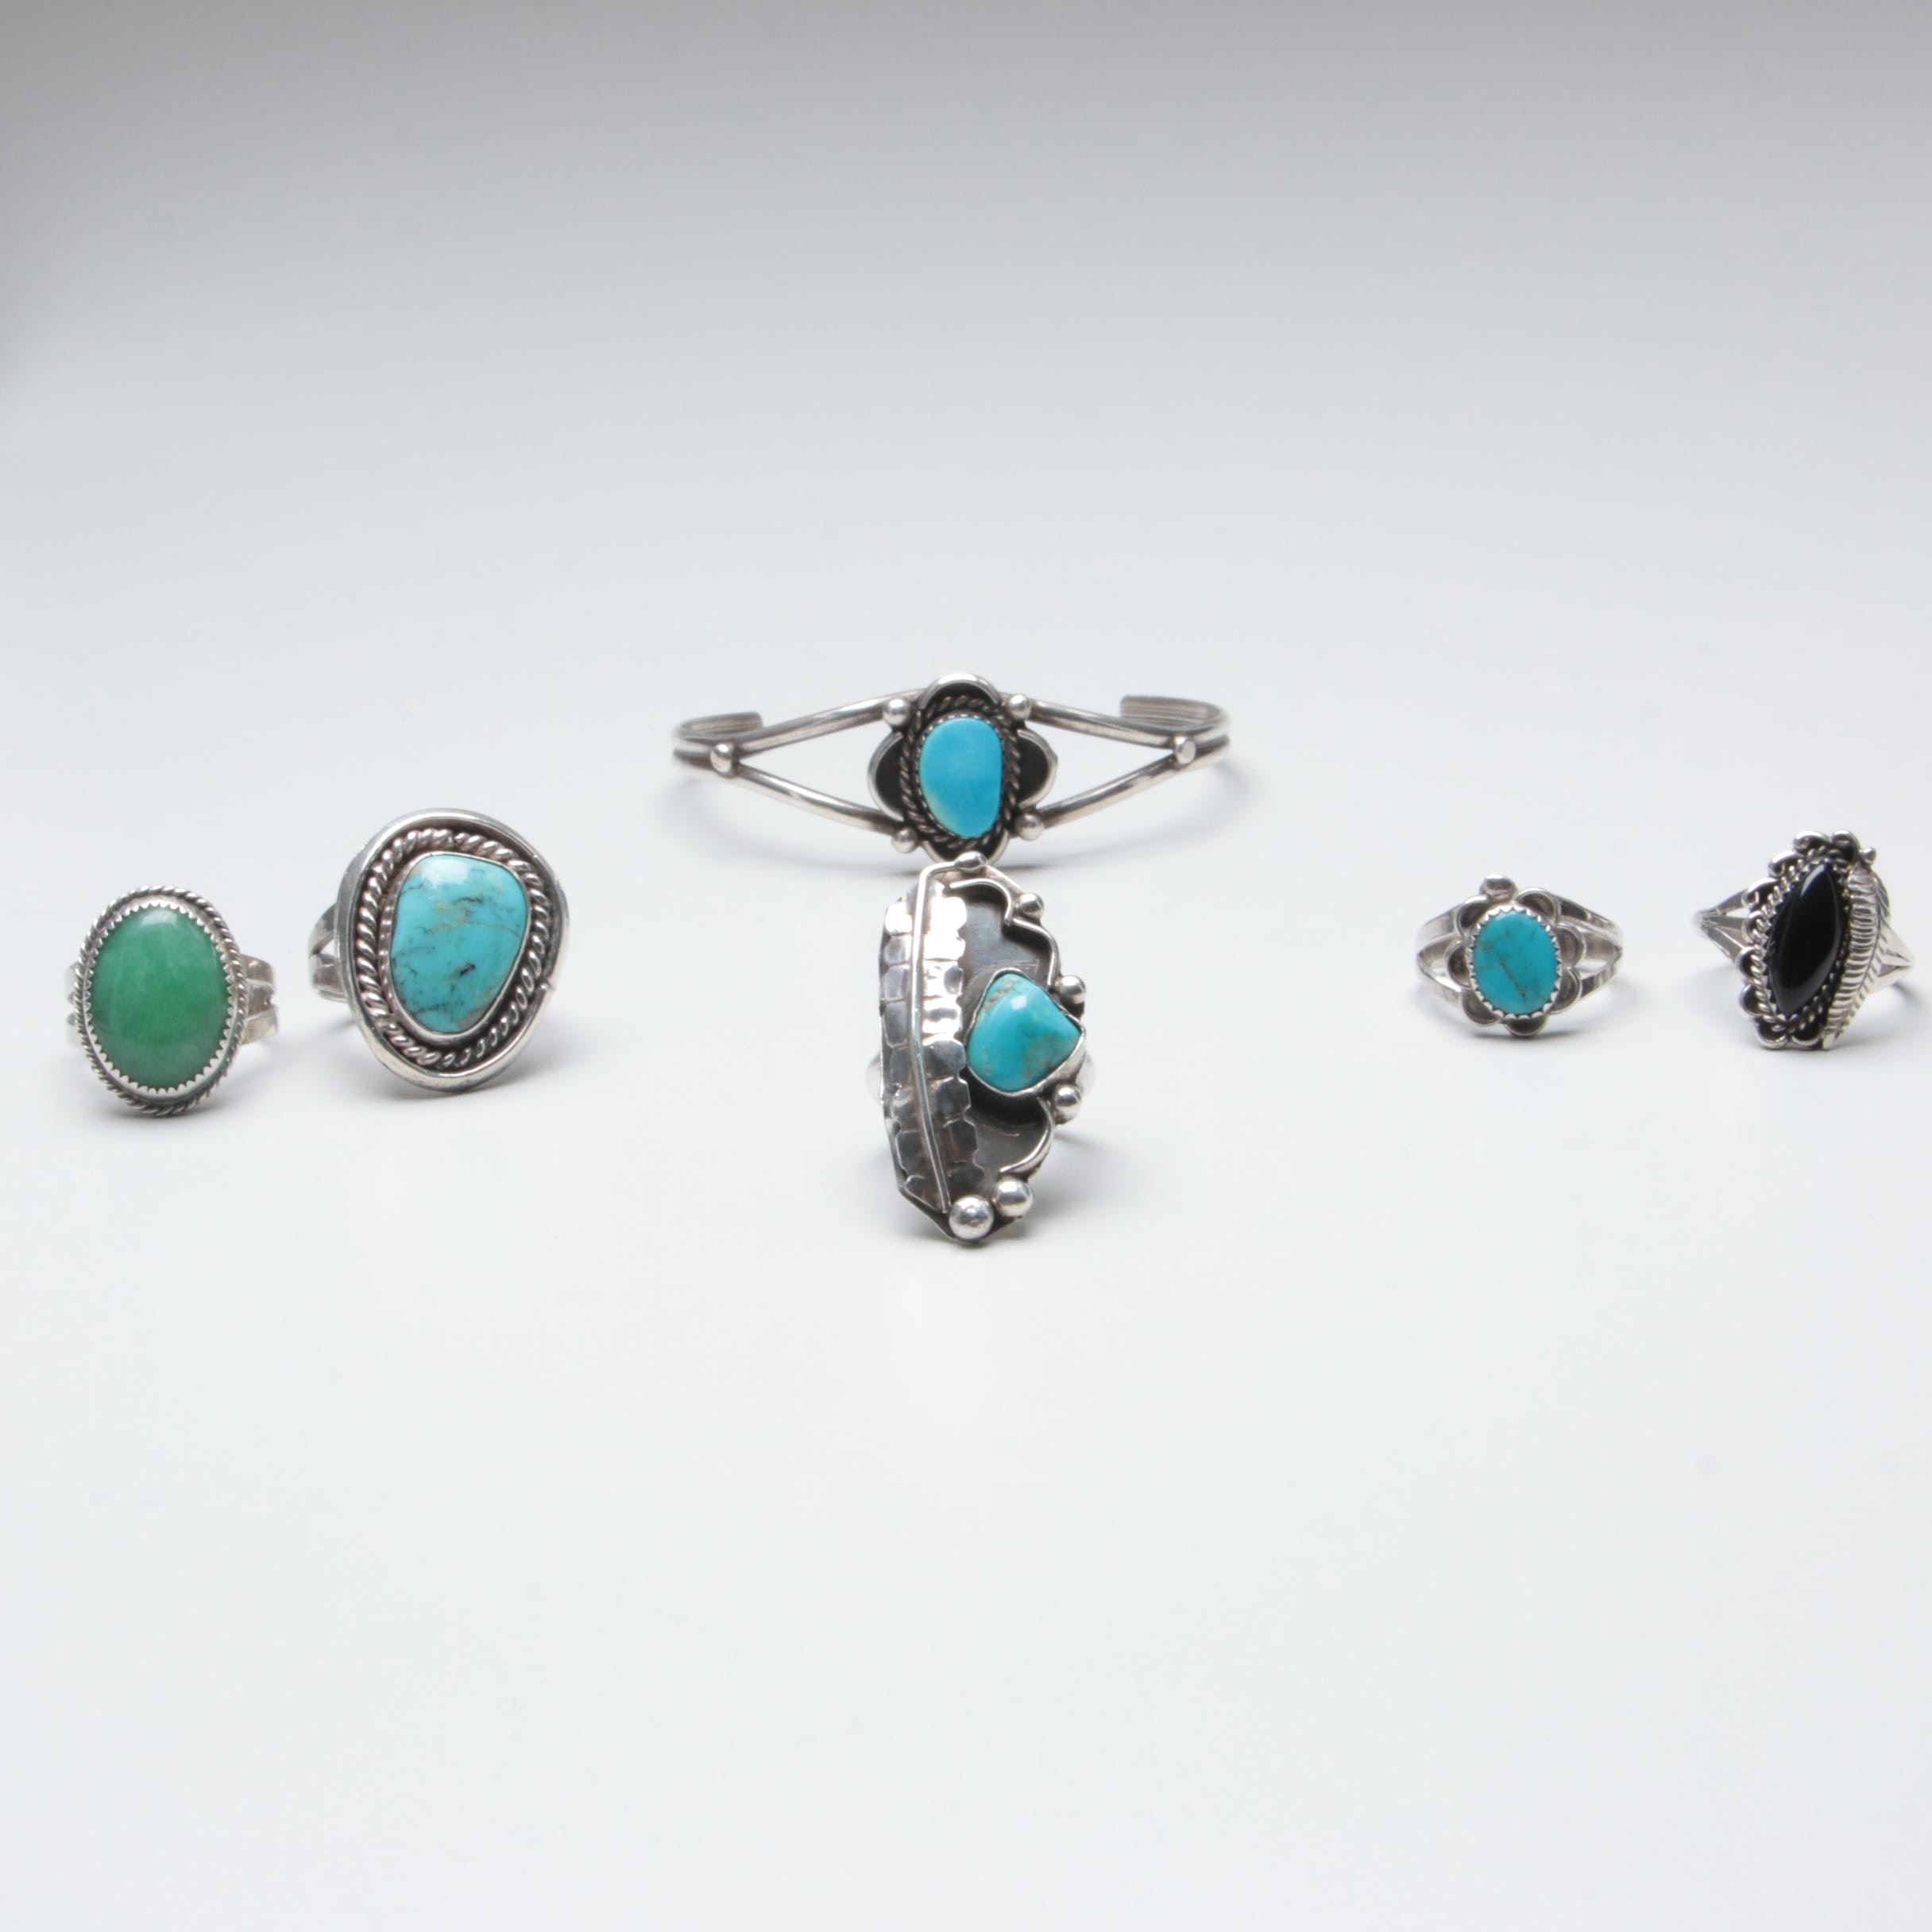 Southwestern Style Sterling Silver Rings and Cuff Bracelet with Turquoise